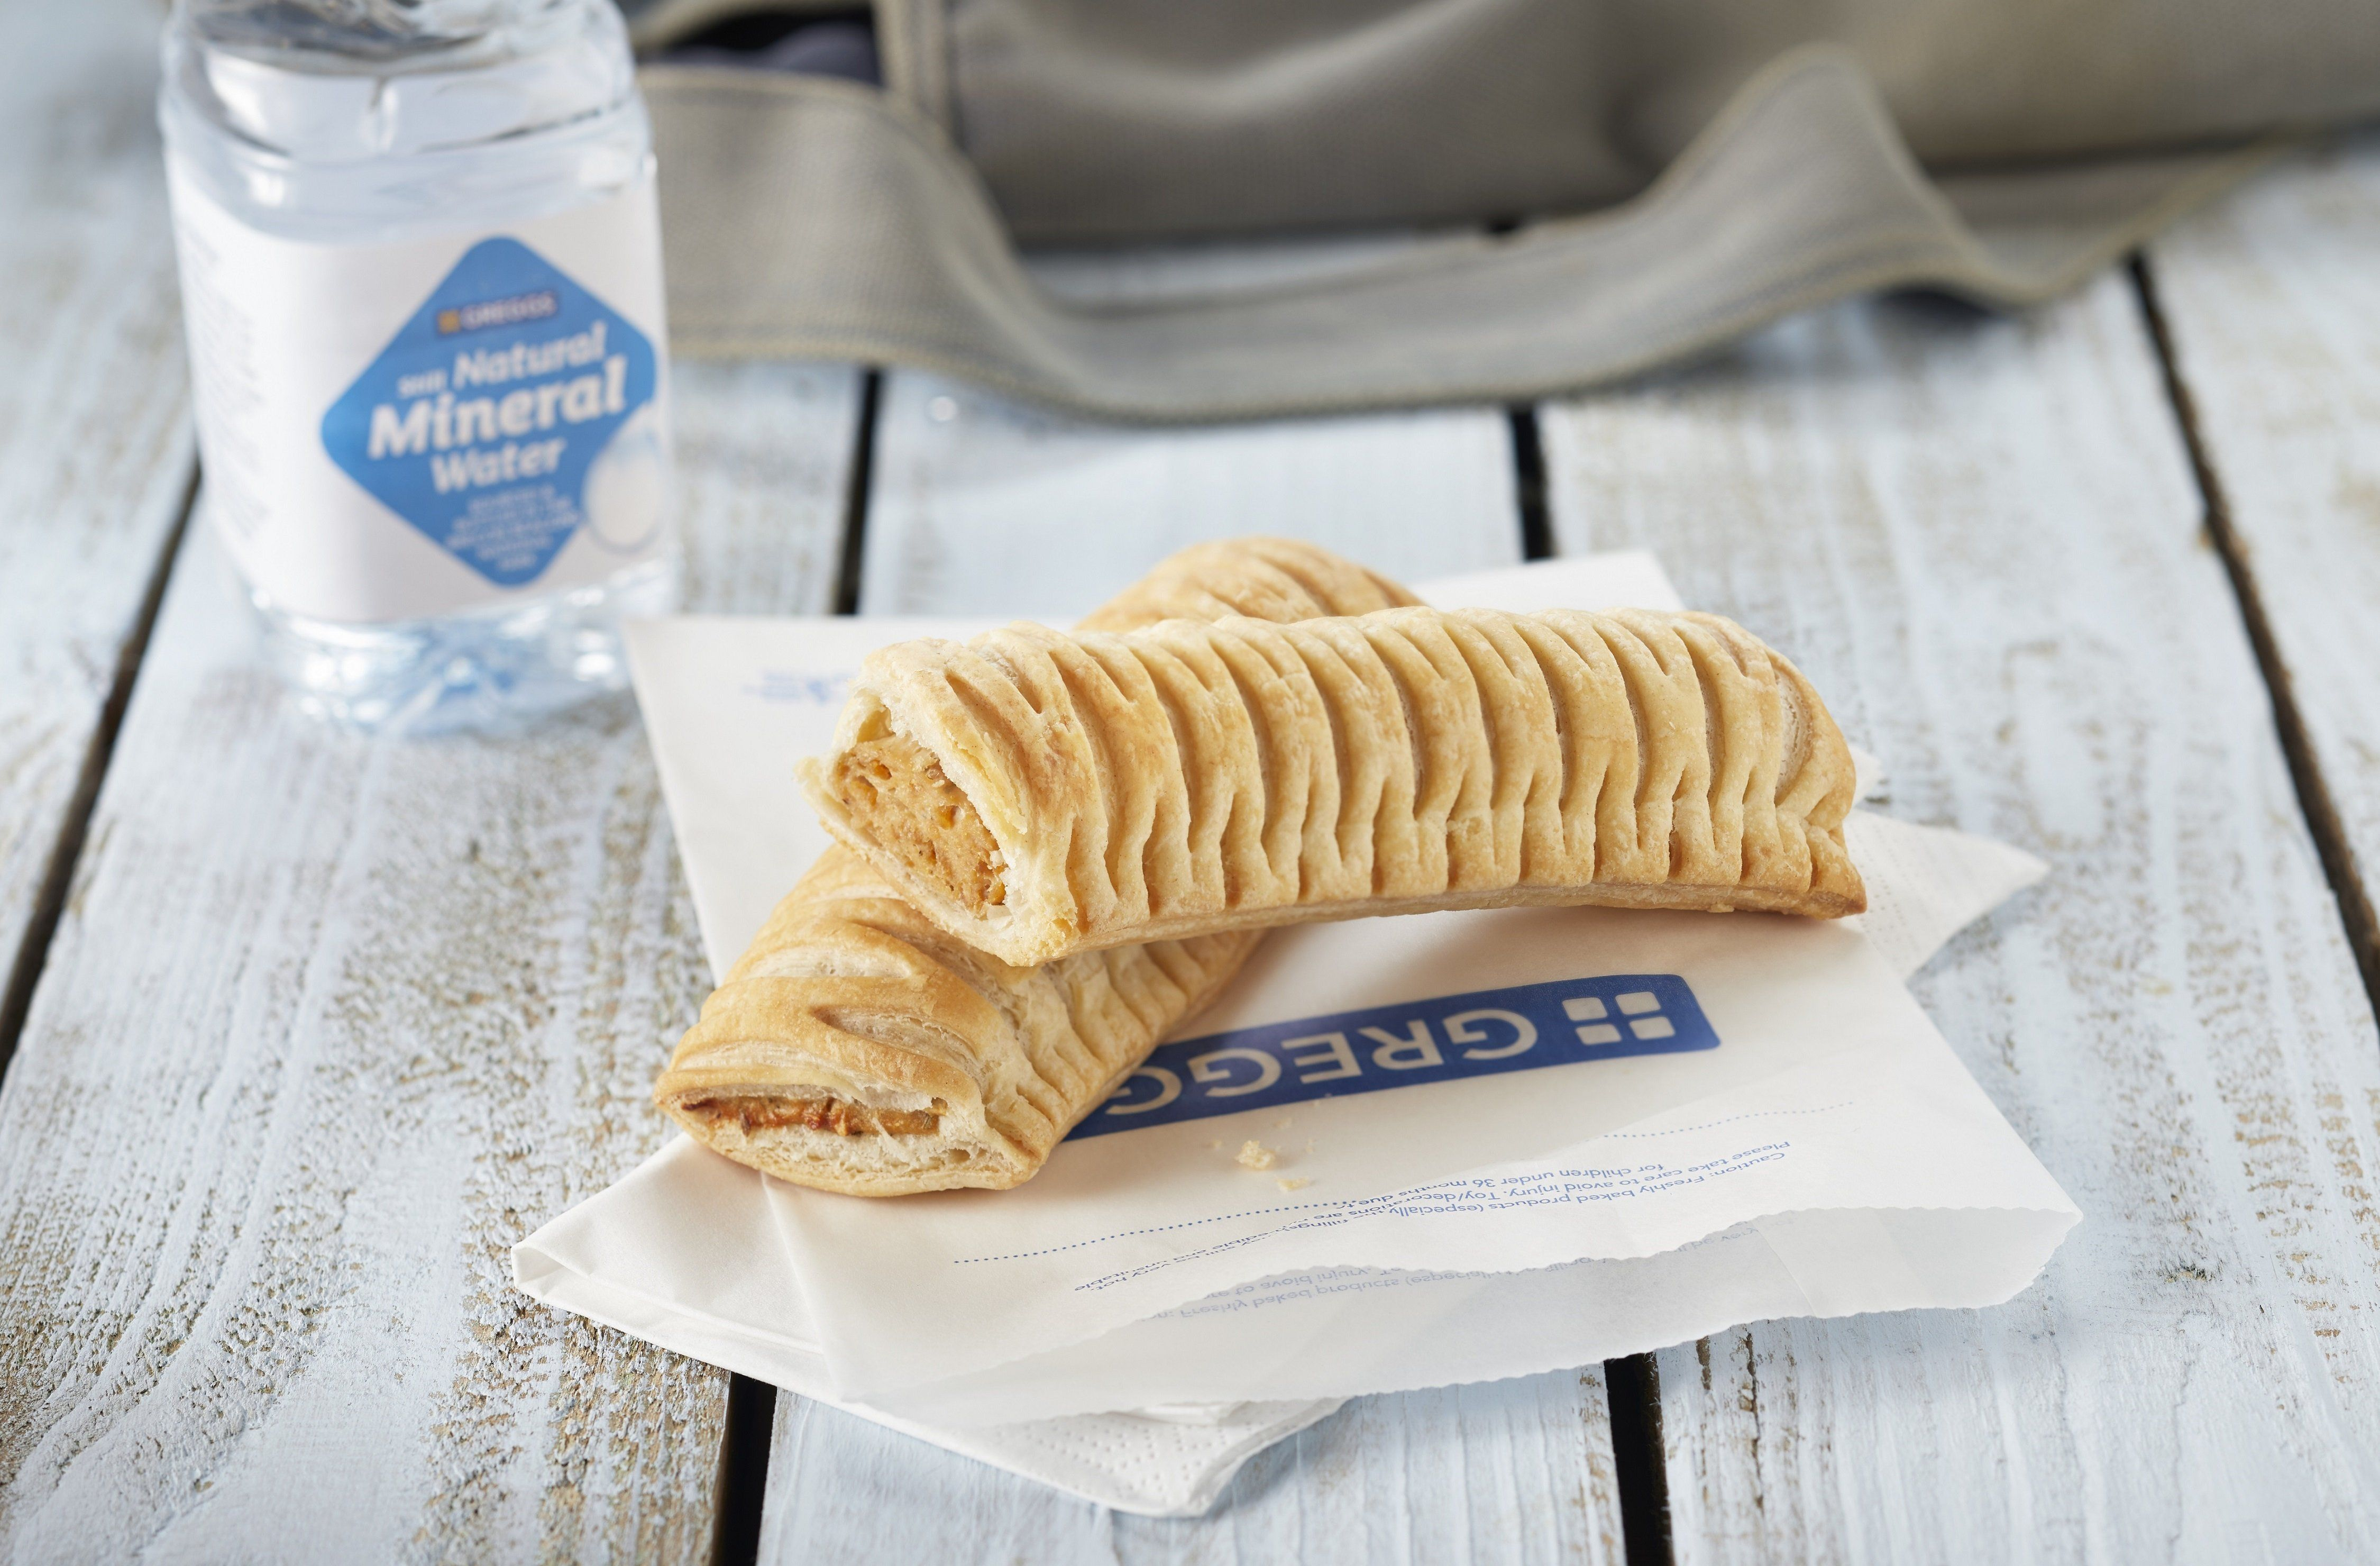 You Could Win Free Greggs Delivered To Your Door For A Year If Your Name Is Greg